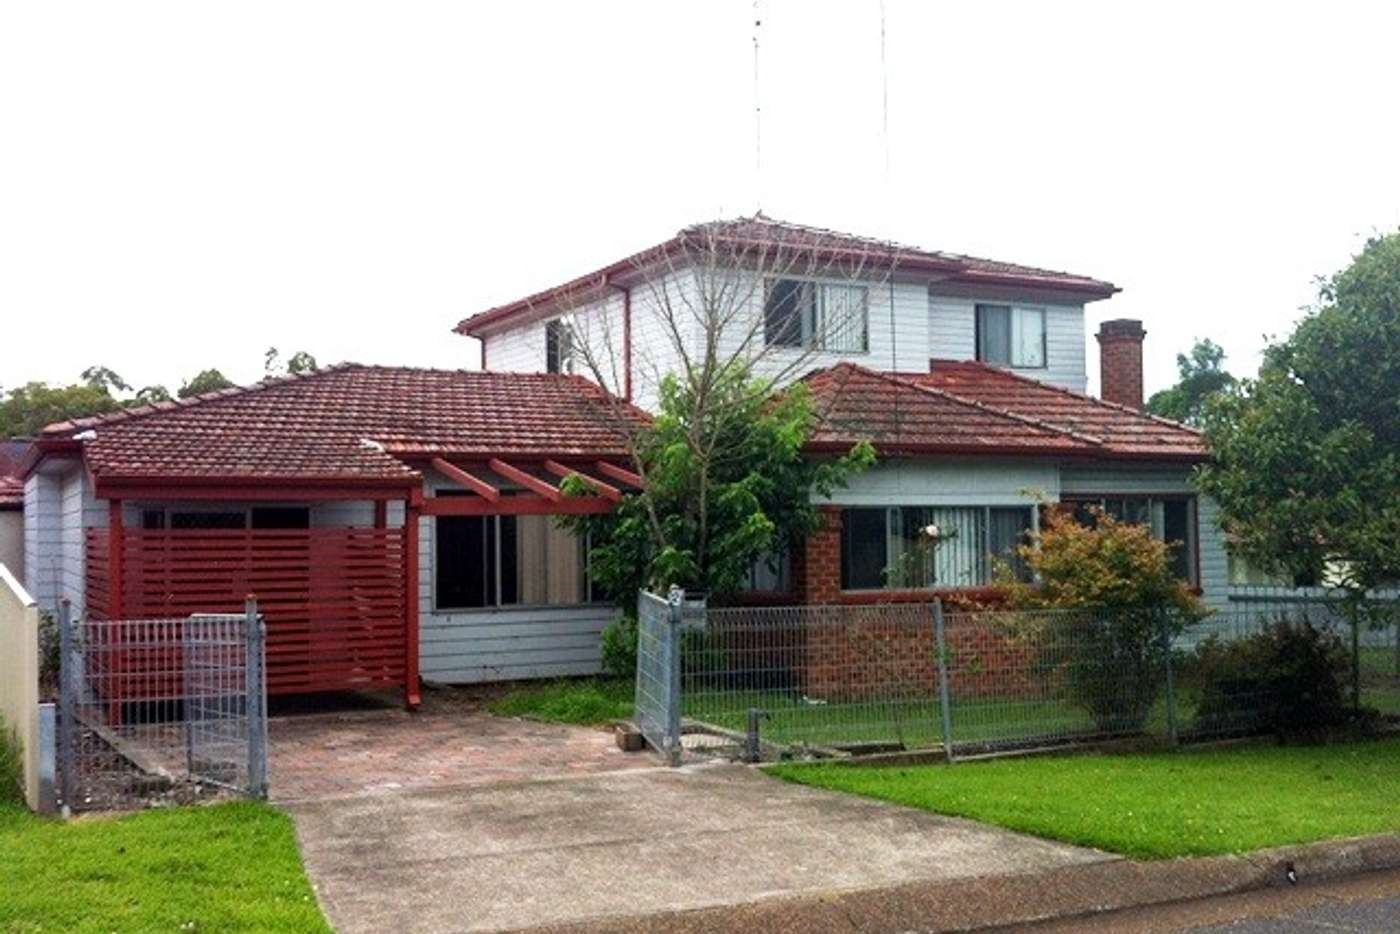 Main view of Homely house listing, 2 Coughlin Street, Birmingham Gardens NSW 2287